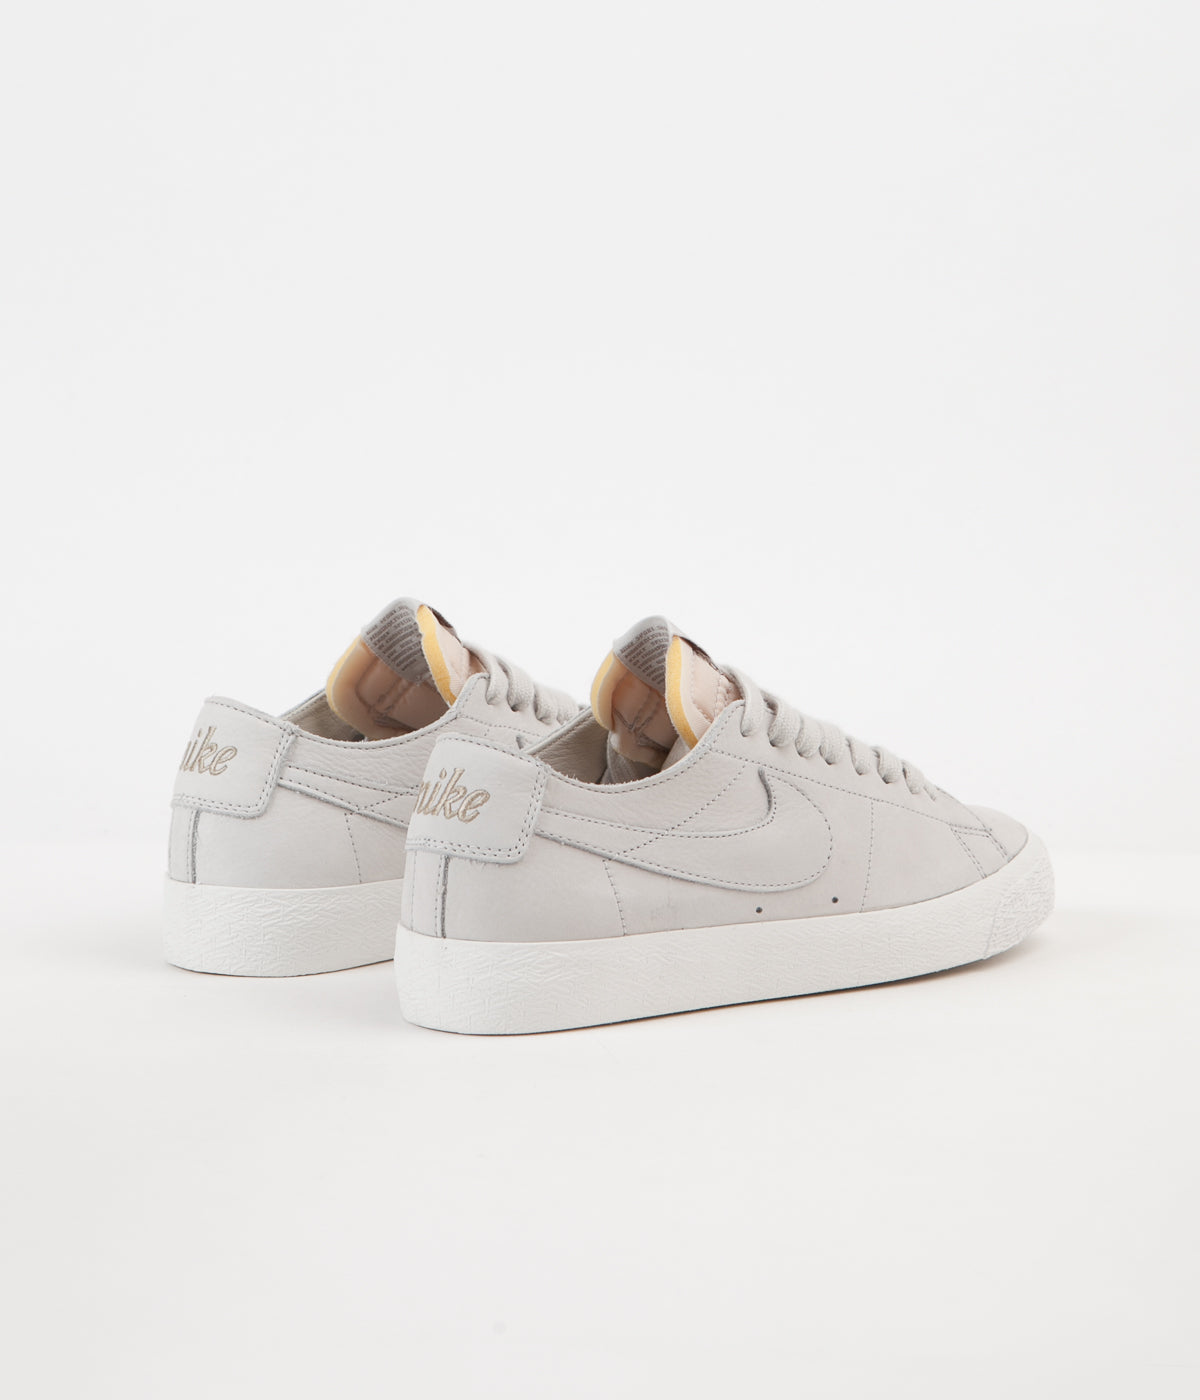 ... Nike SB Blazer Low Deconstructed Shoes - Light Bone   Light Bone -  Khaki ... 238ff849a